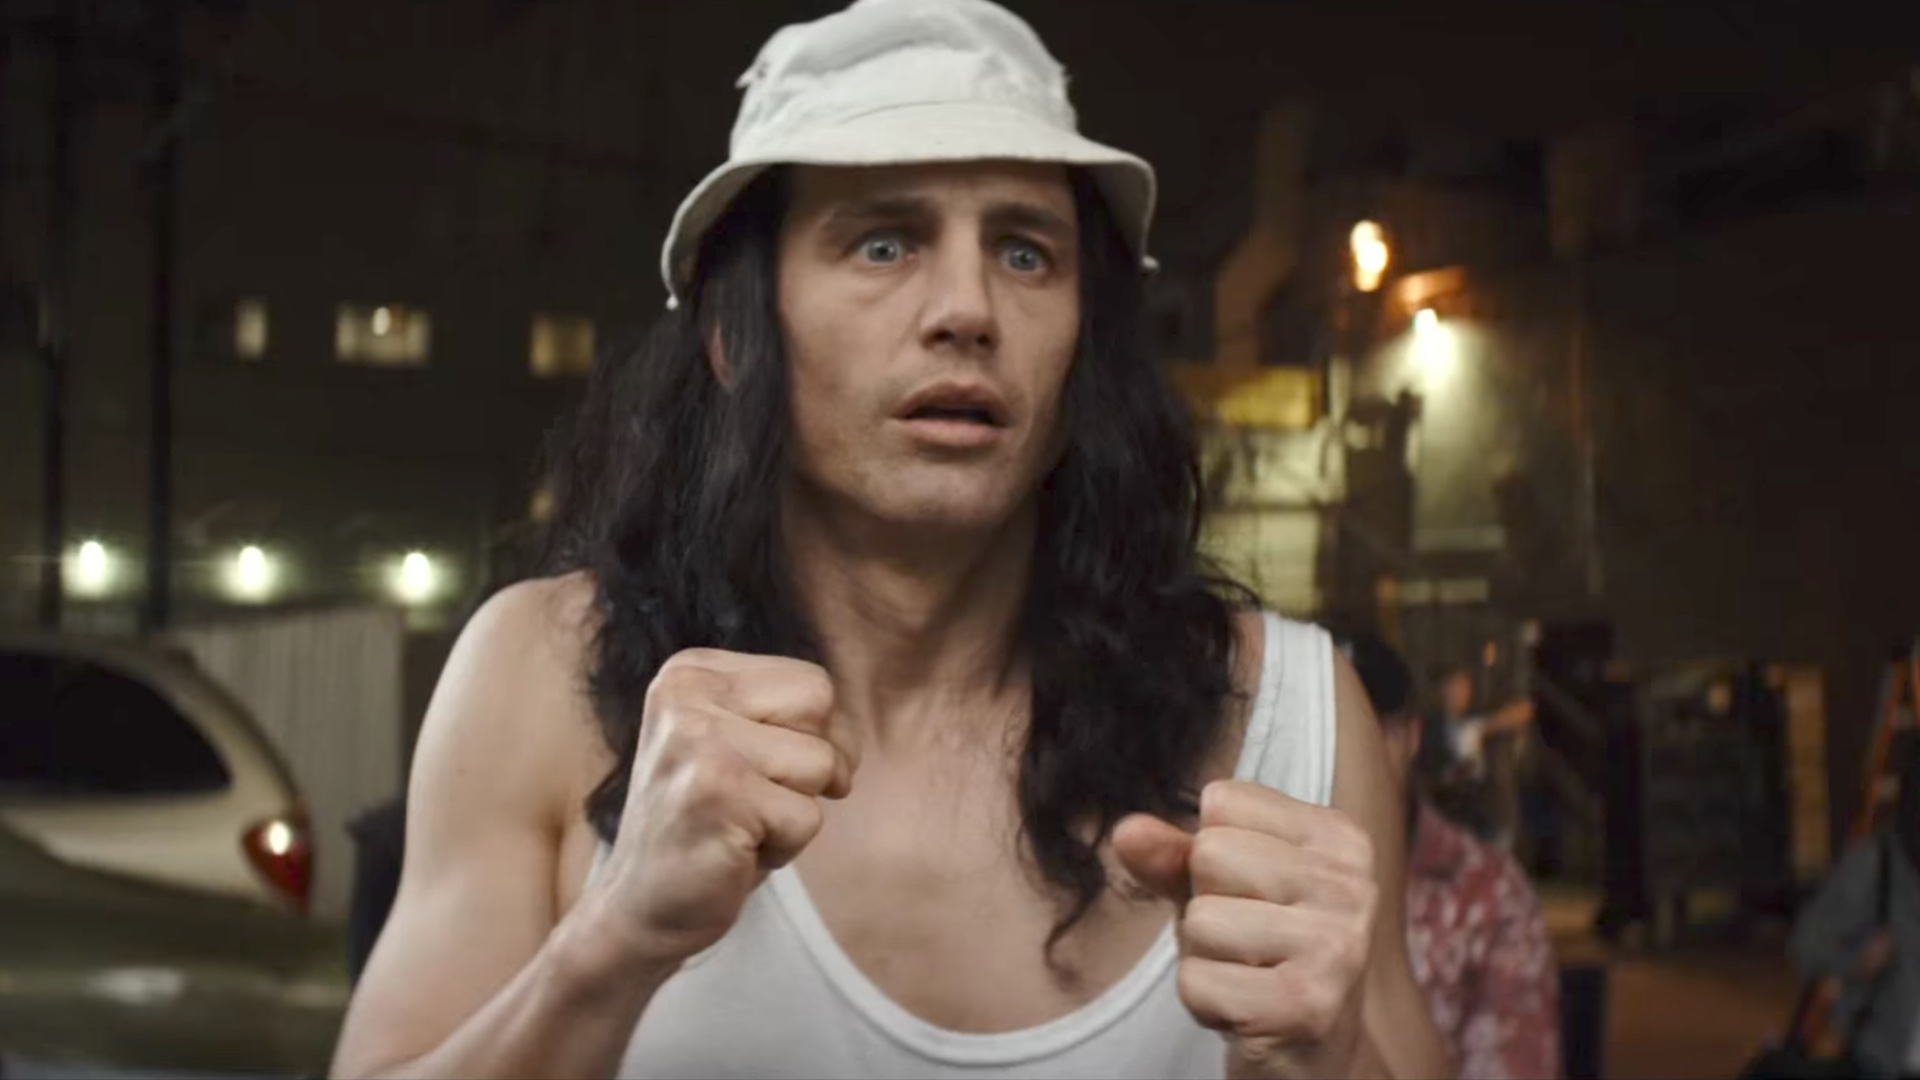 james-franco-has-a-malevolent-presence-in-this-fantastic-new-trailer-for-the-disaster-artist-social.jpg